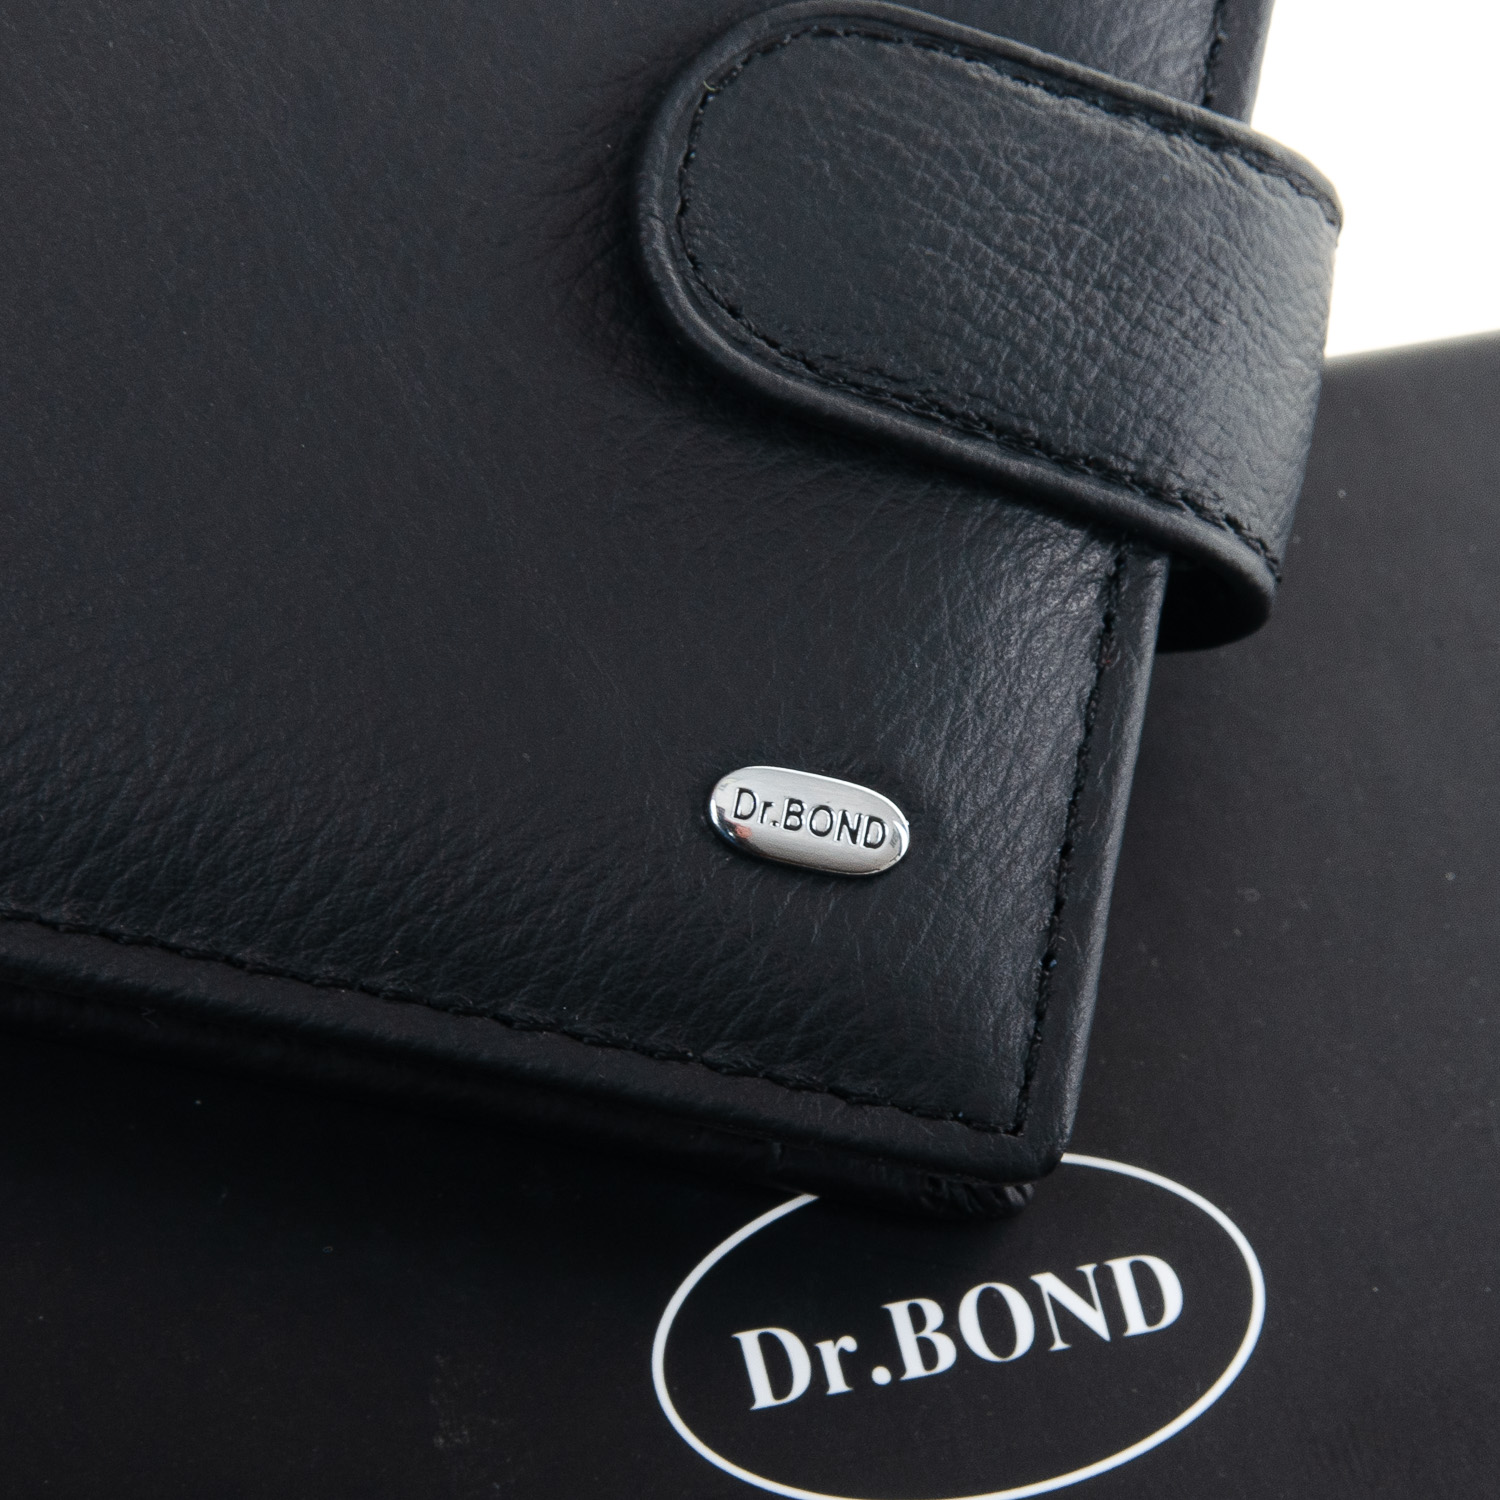 Кошелек Classic кожа DR. BOND M3 black - фото 3